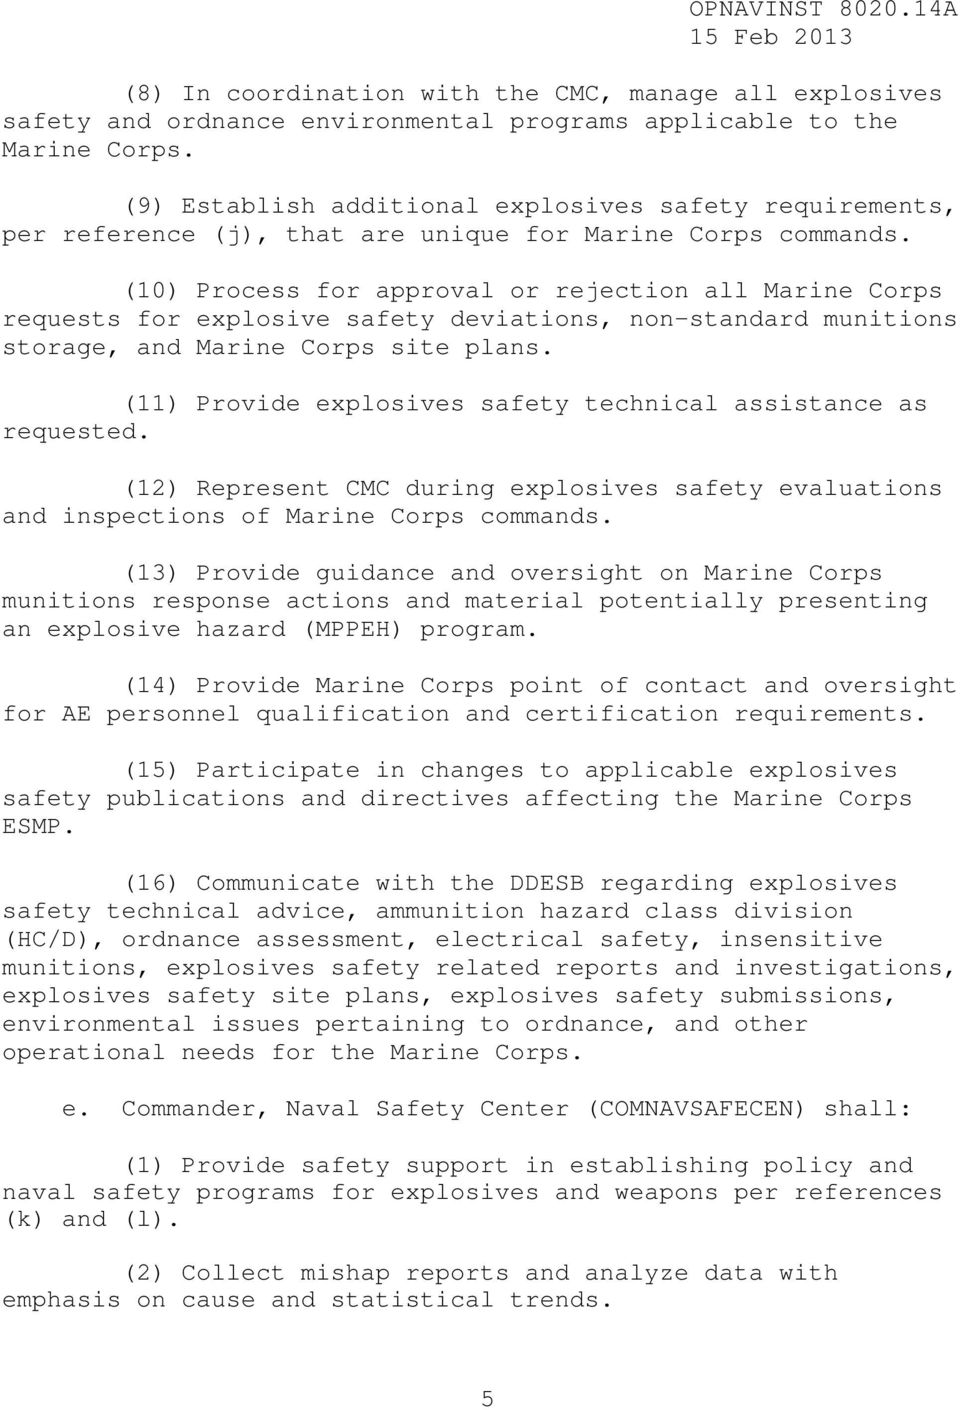 (10) Process for approval or rejection all Marine Corps requests for explosive safety deviations, non-standard munitions storage, and Marine Corps site plans.